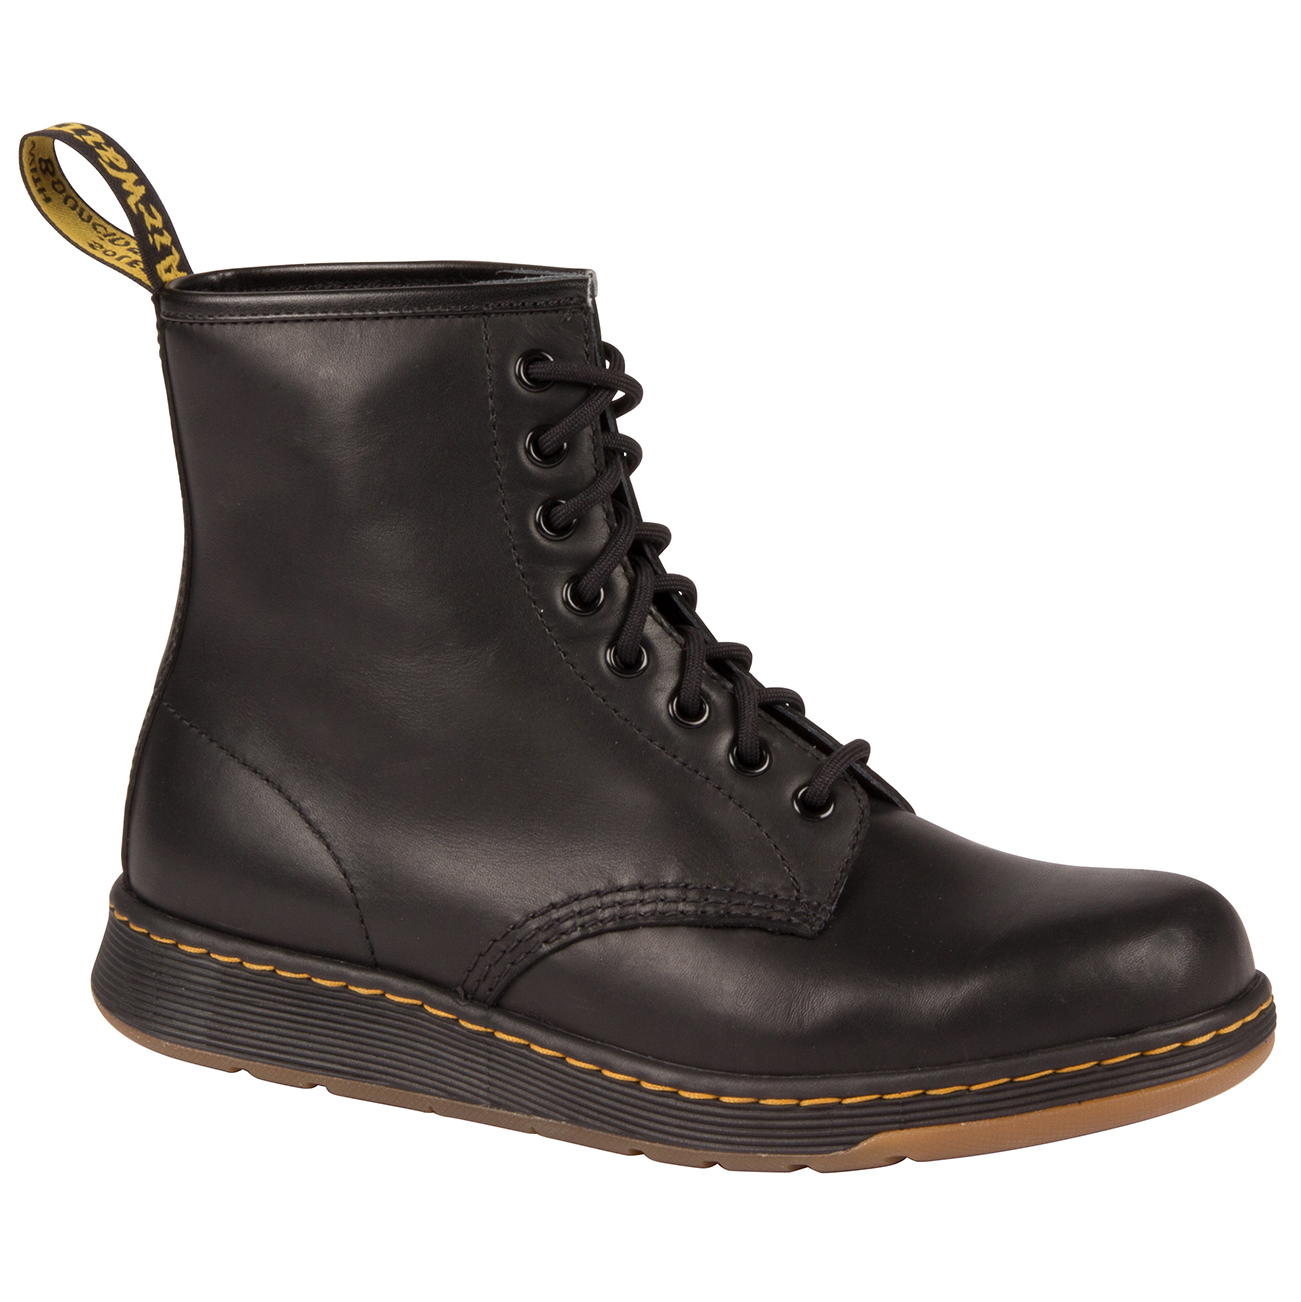 Unisex Adults Dr Martens Newton Sleek